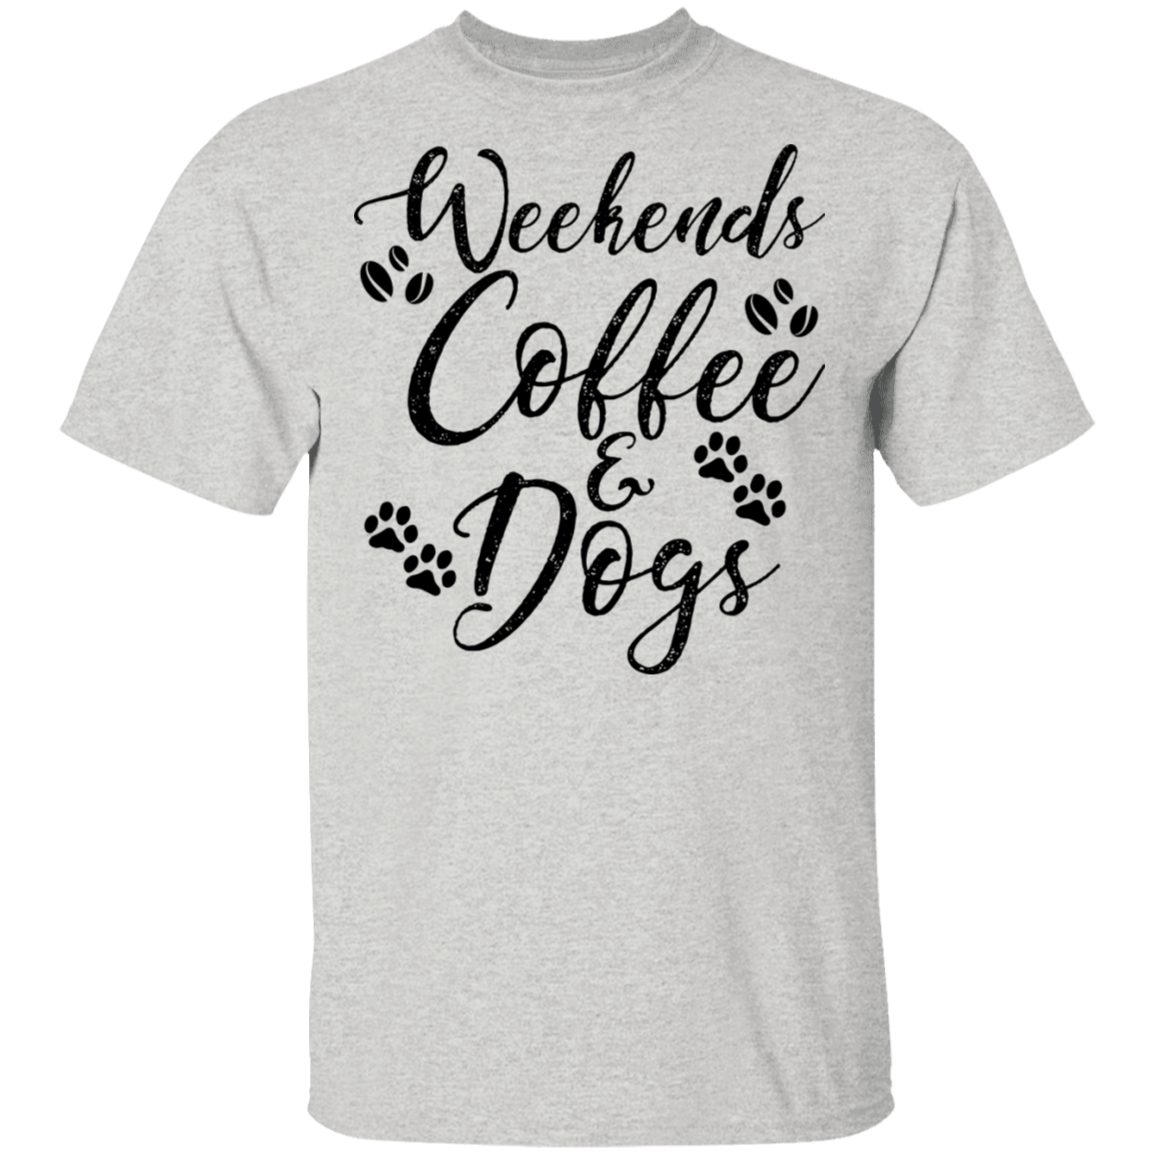 Weekends, Coffee, Dogs